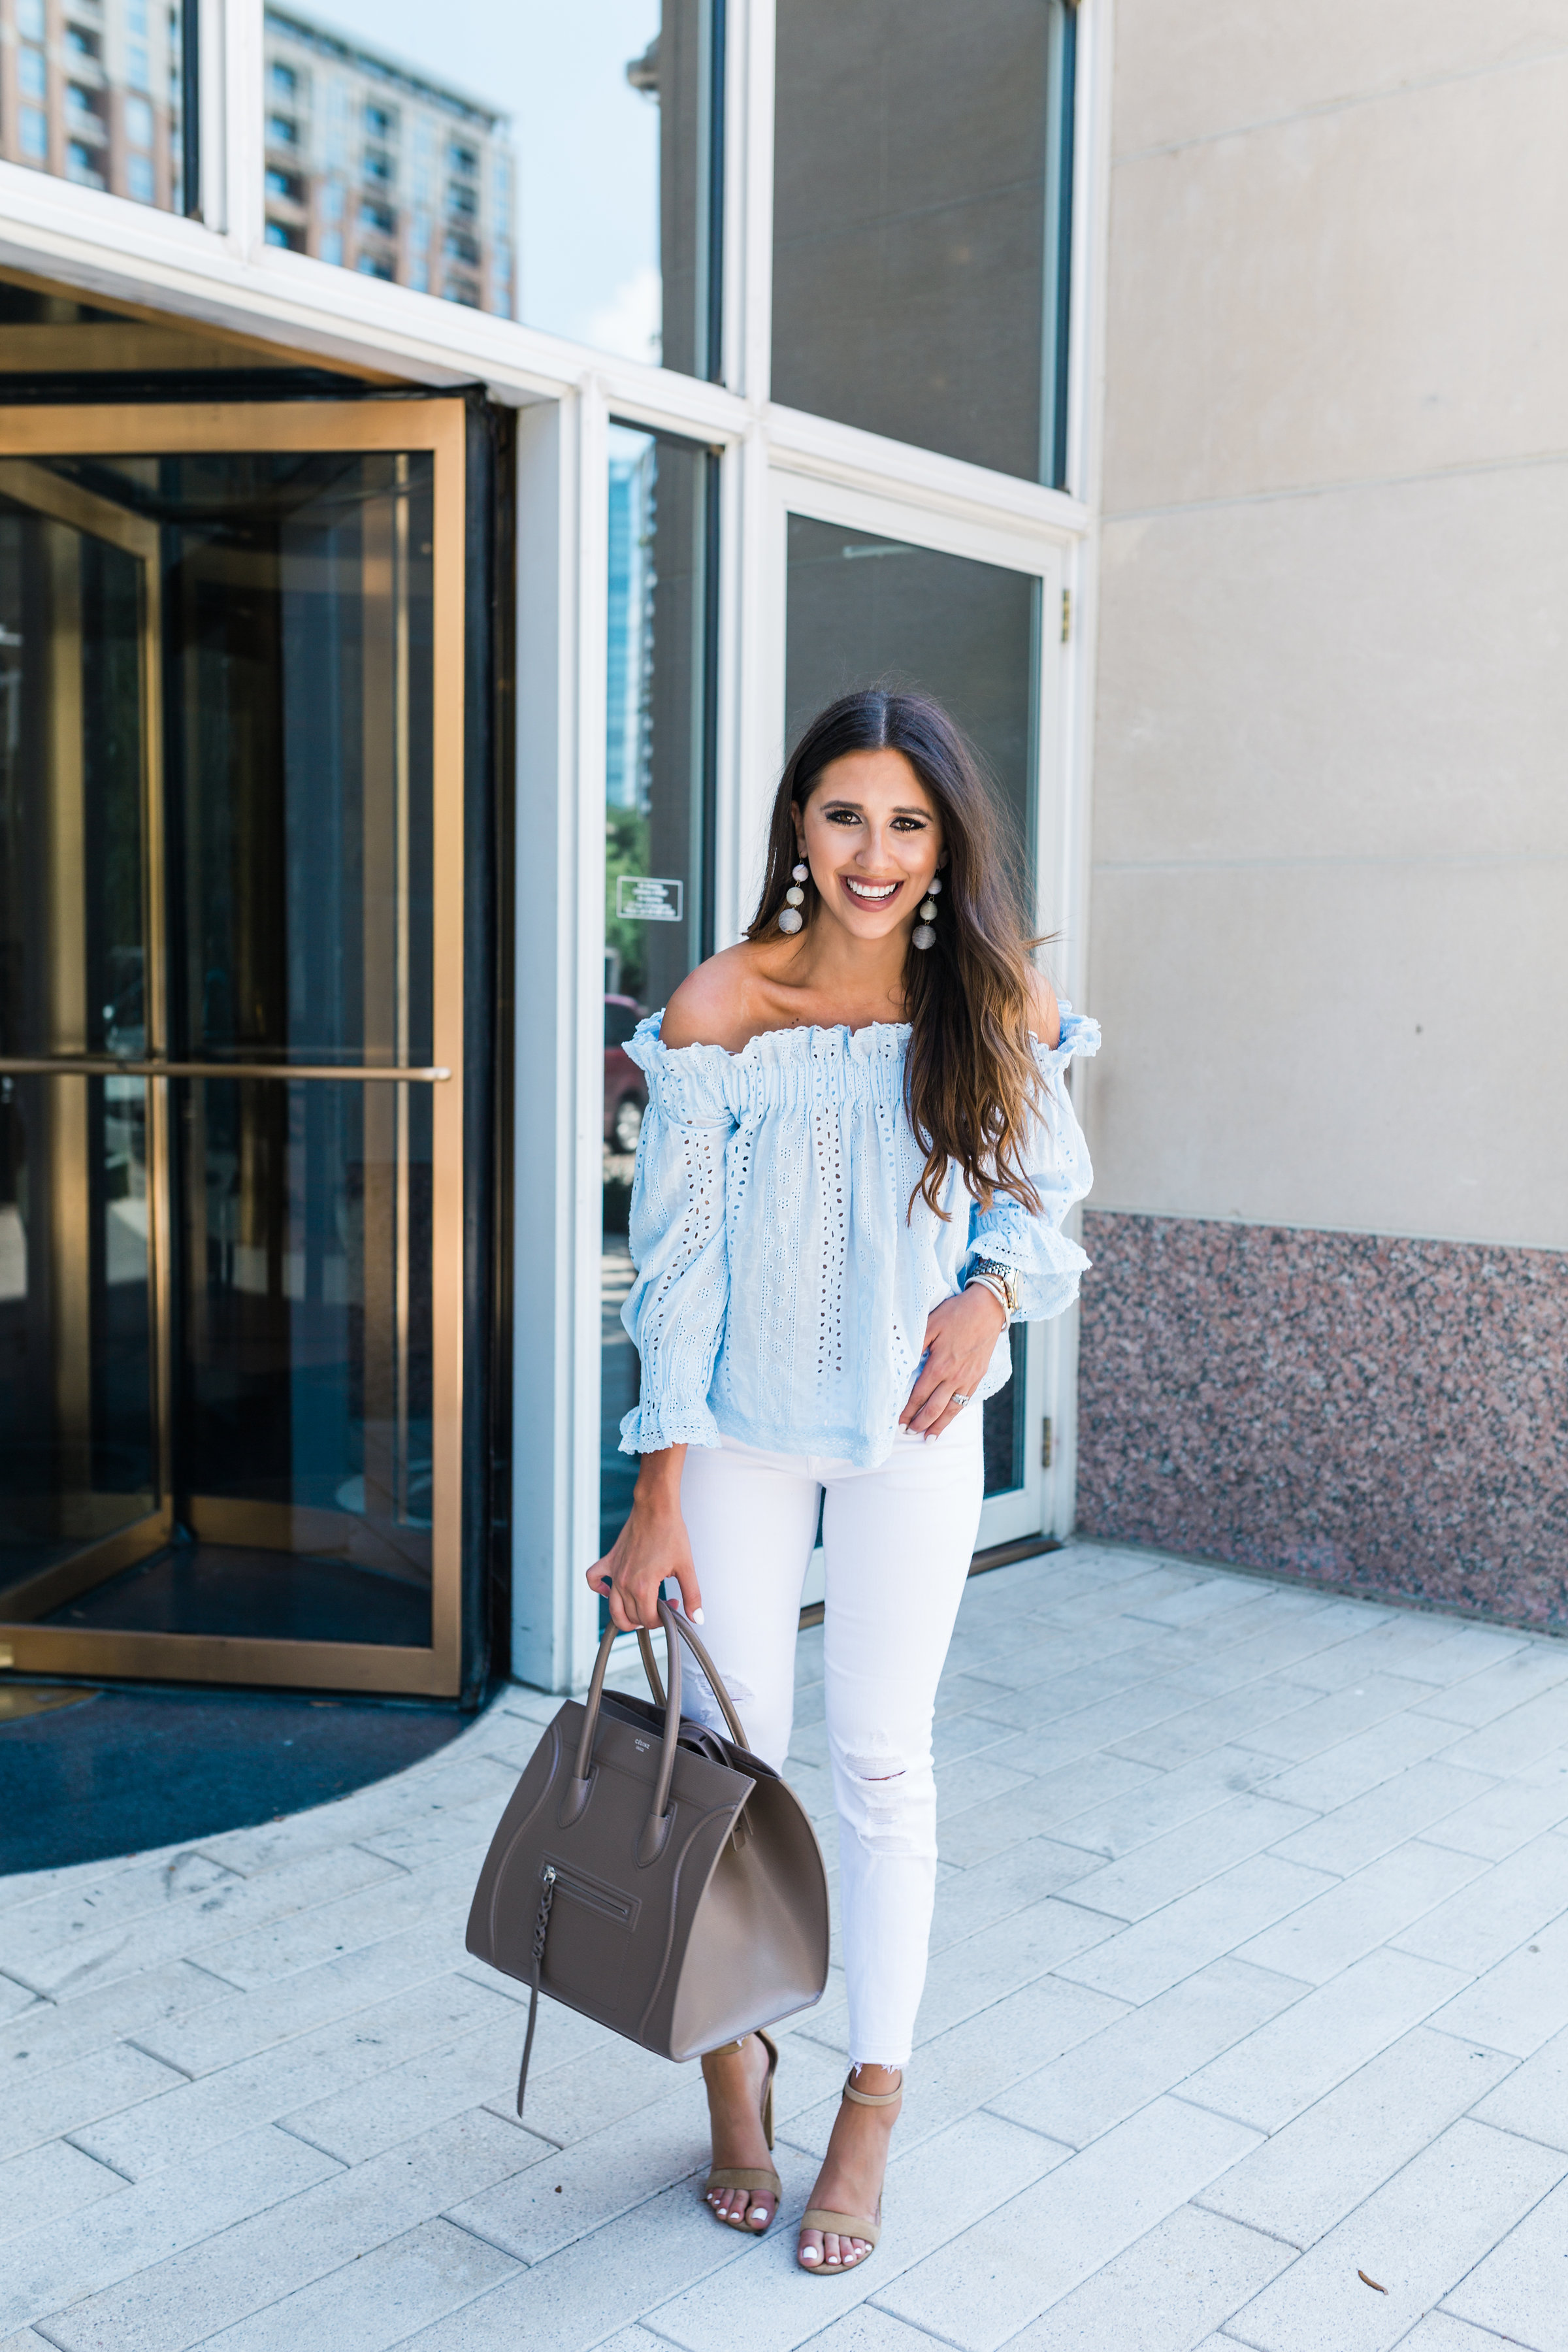 Dress Up Buttercup // A Houston-based fashion and inspiration blog developed to daily inspire your own personal style by Dede Raad | Endless Rose